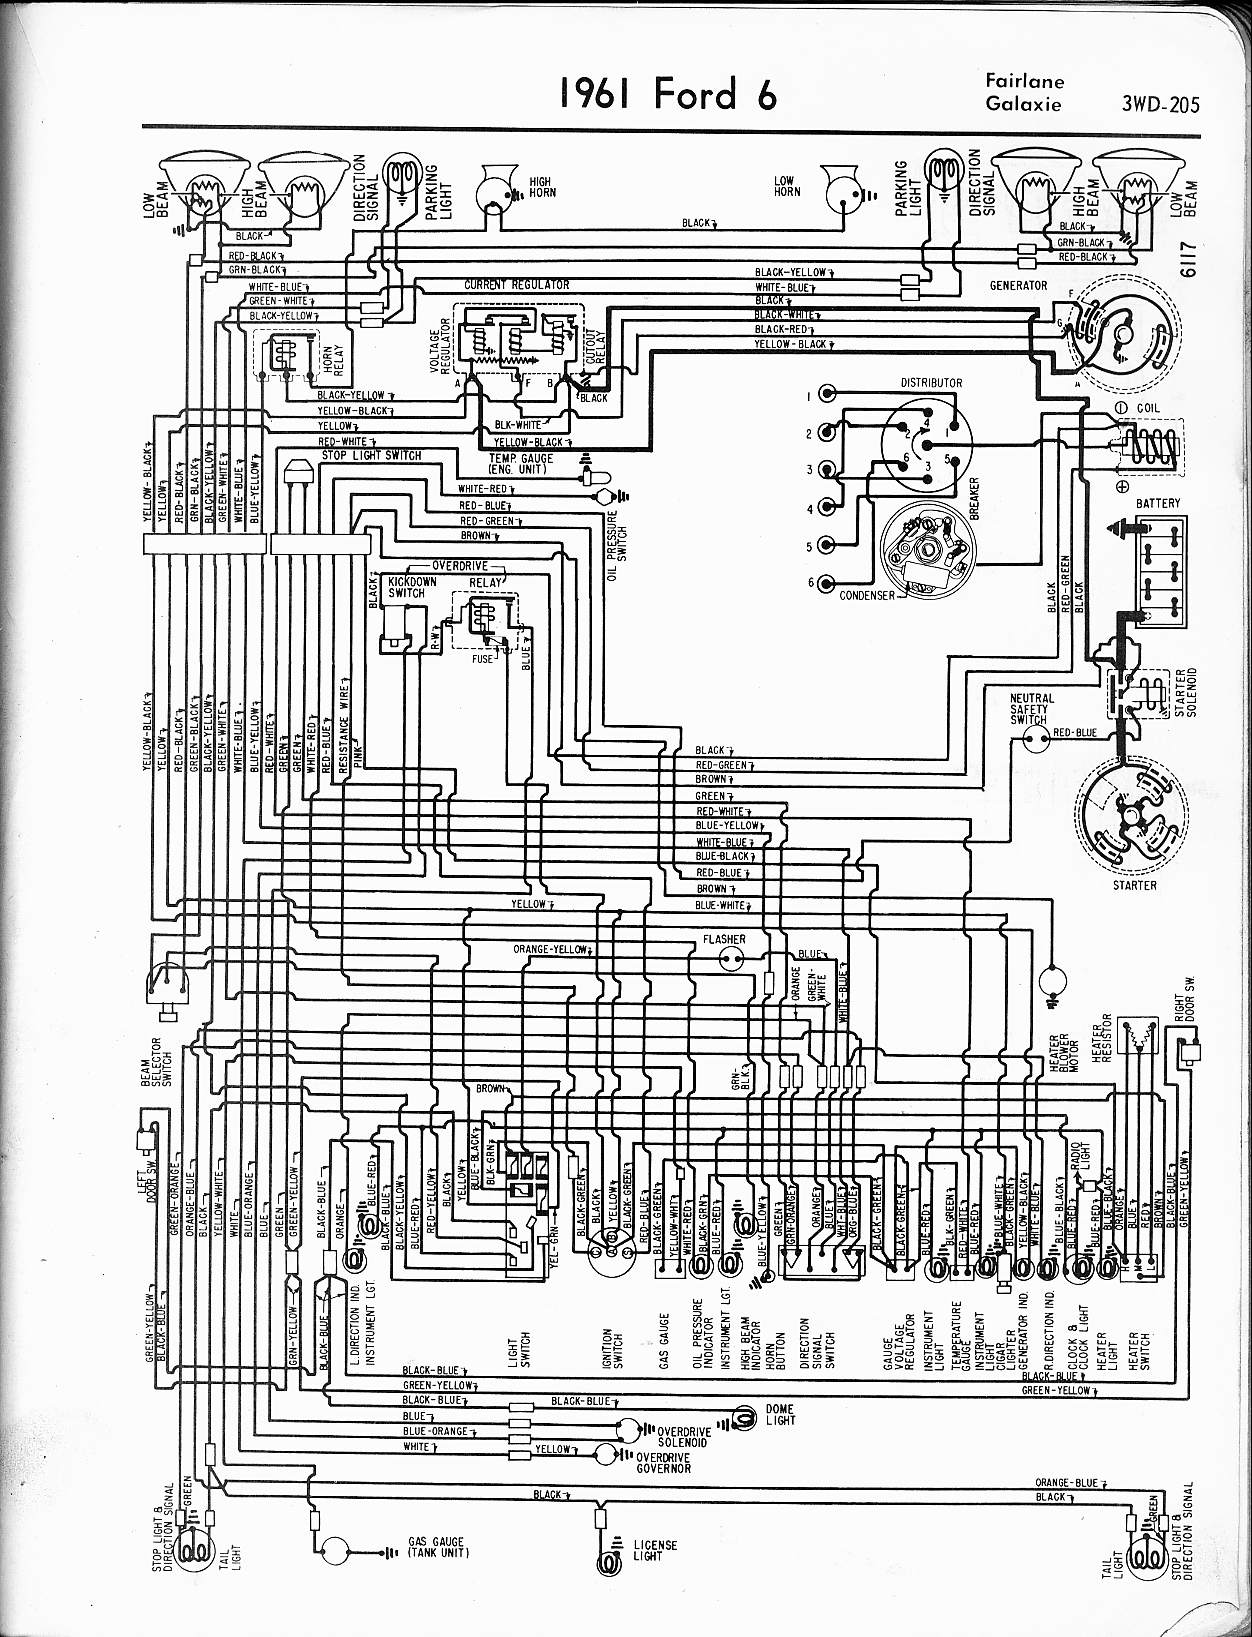 Ford 4000 Tractor Generator Wiring Diagram